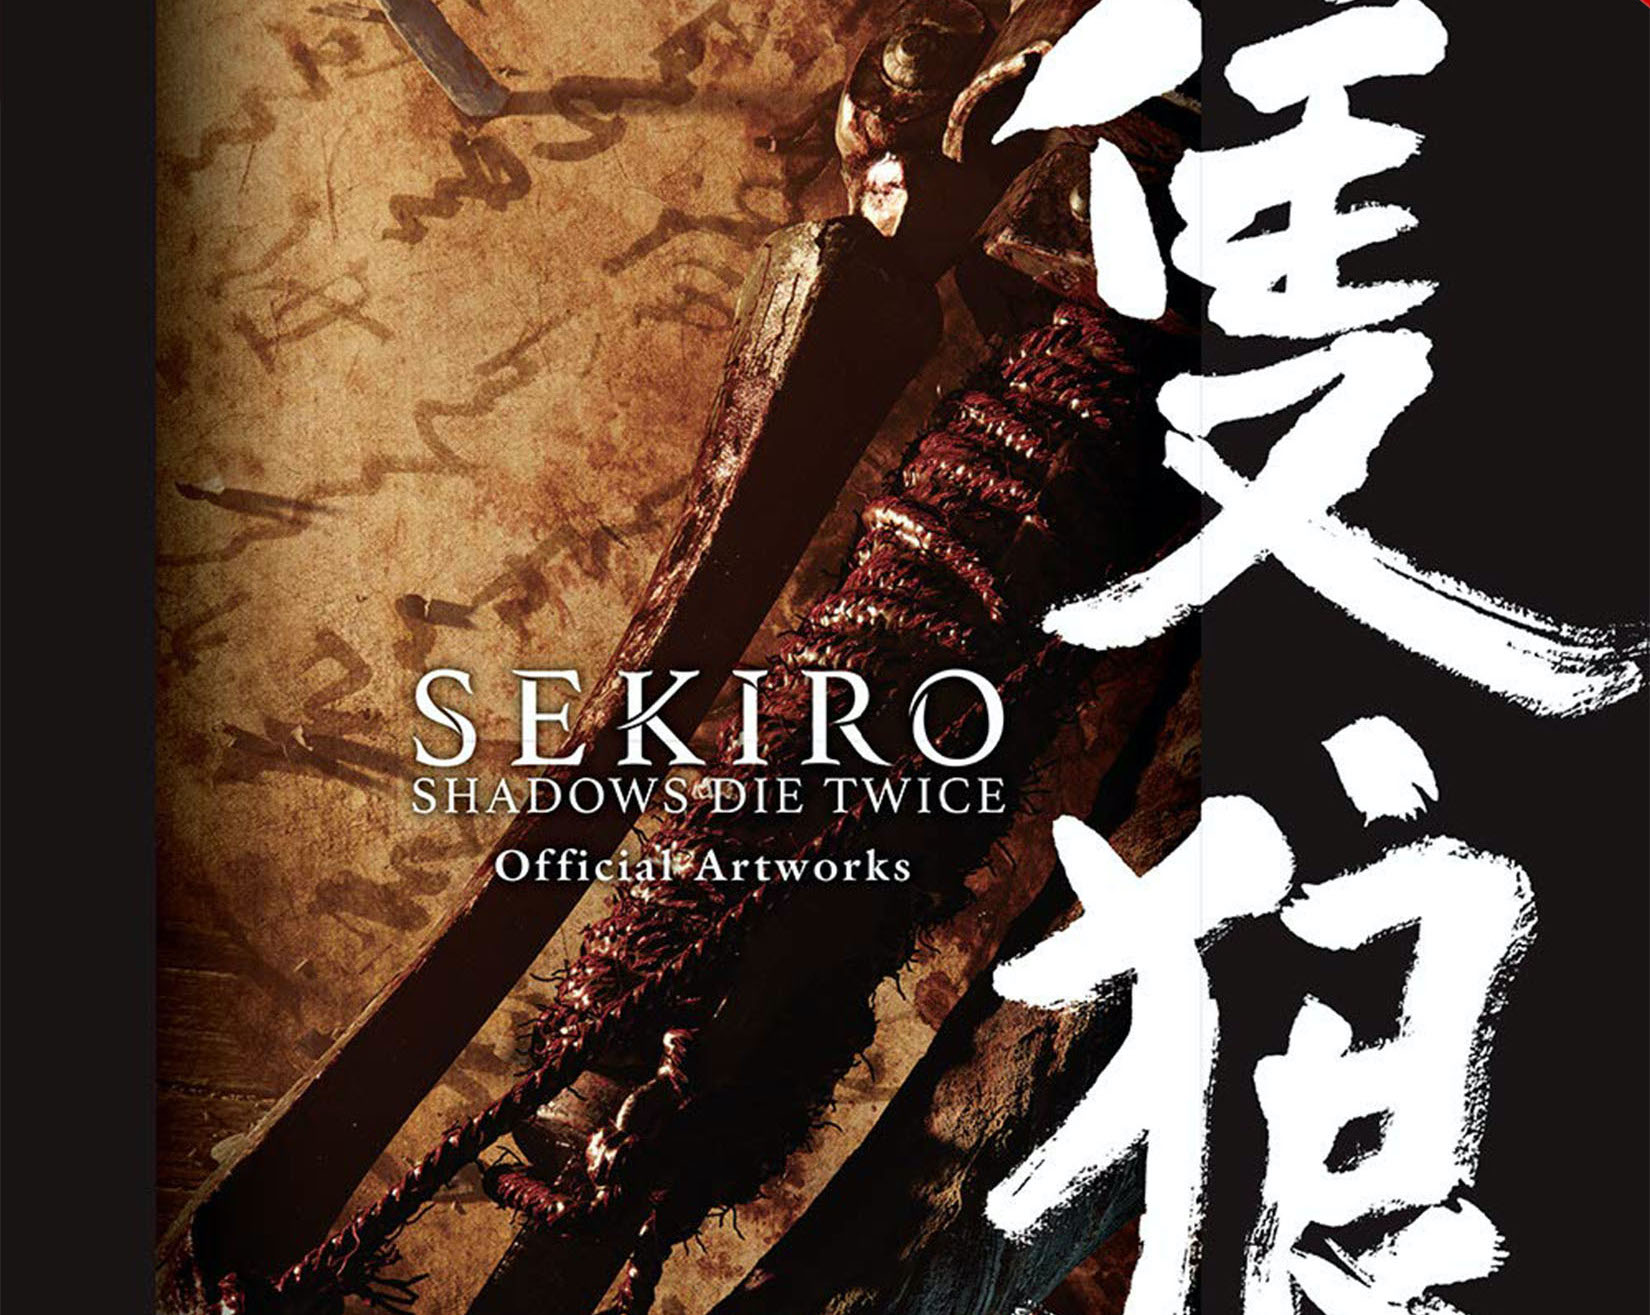 Yen Press announces 'Sekiro: Shadows Die Twice Official Artworks' art book for October 2020